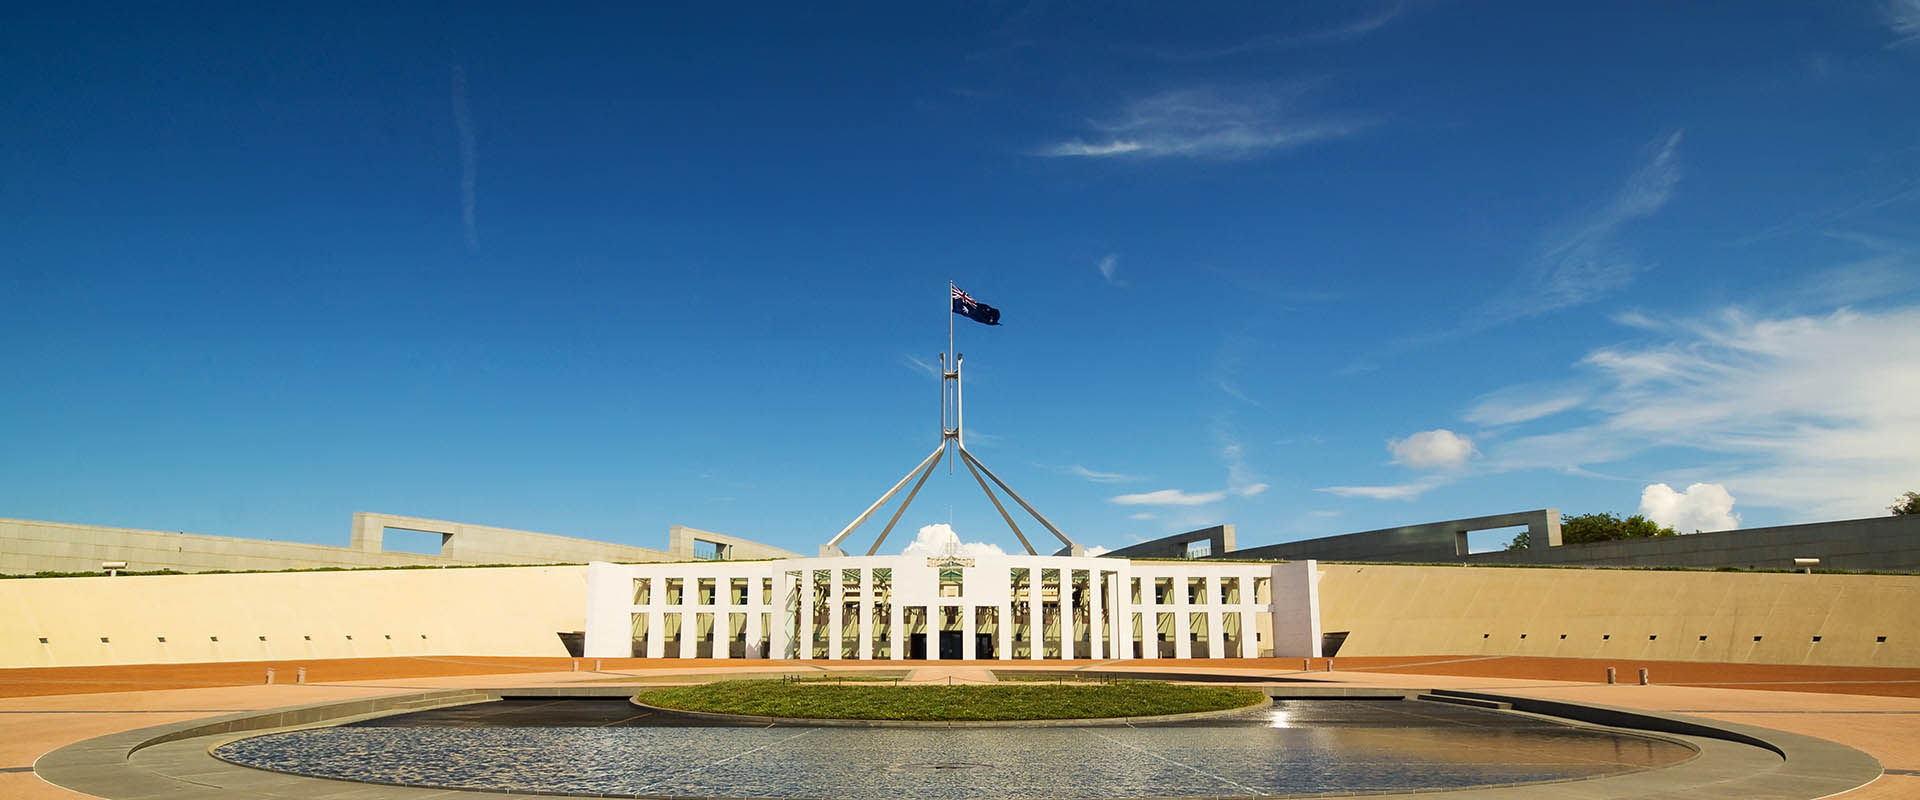 Wide-angle shot of Parliament House in Canberra, Australia.